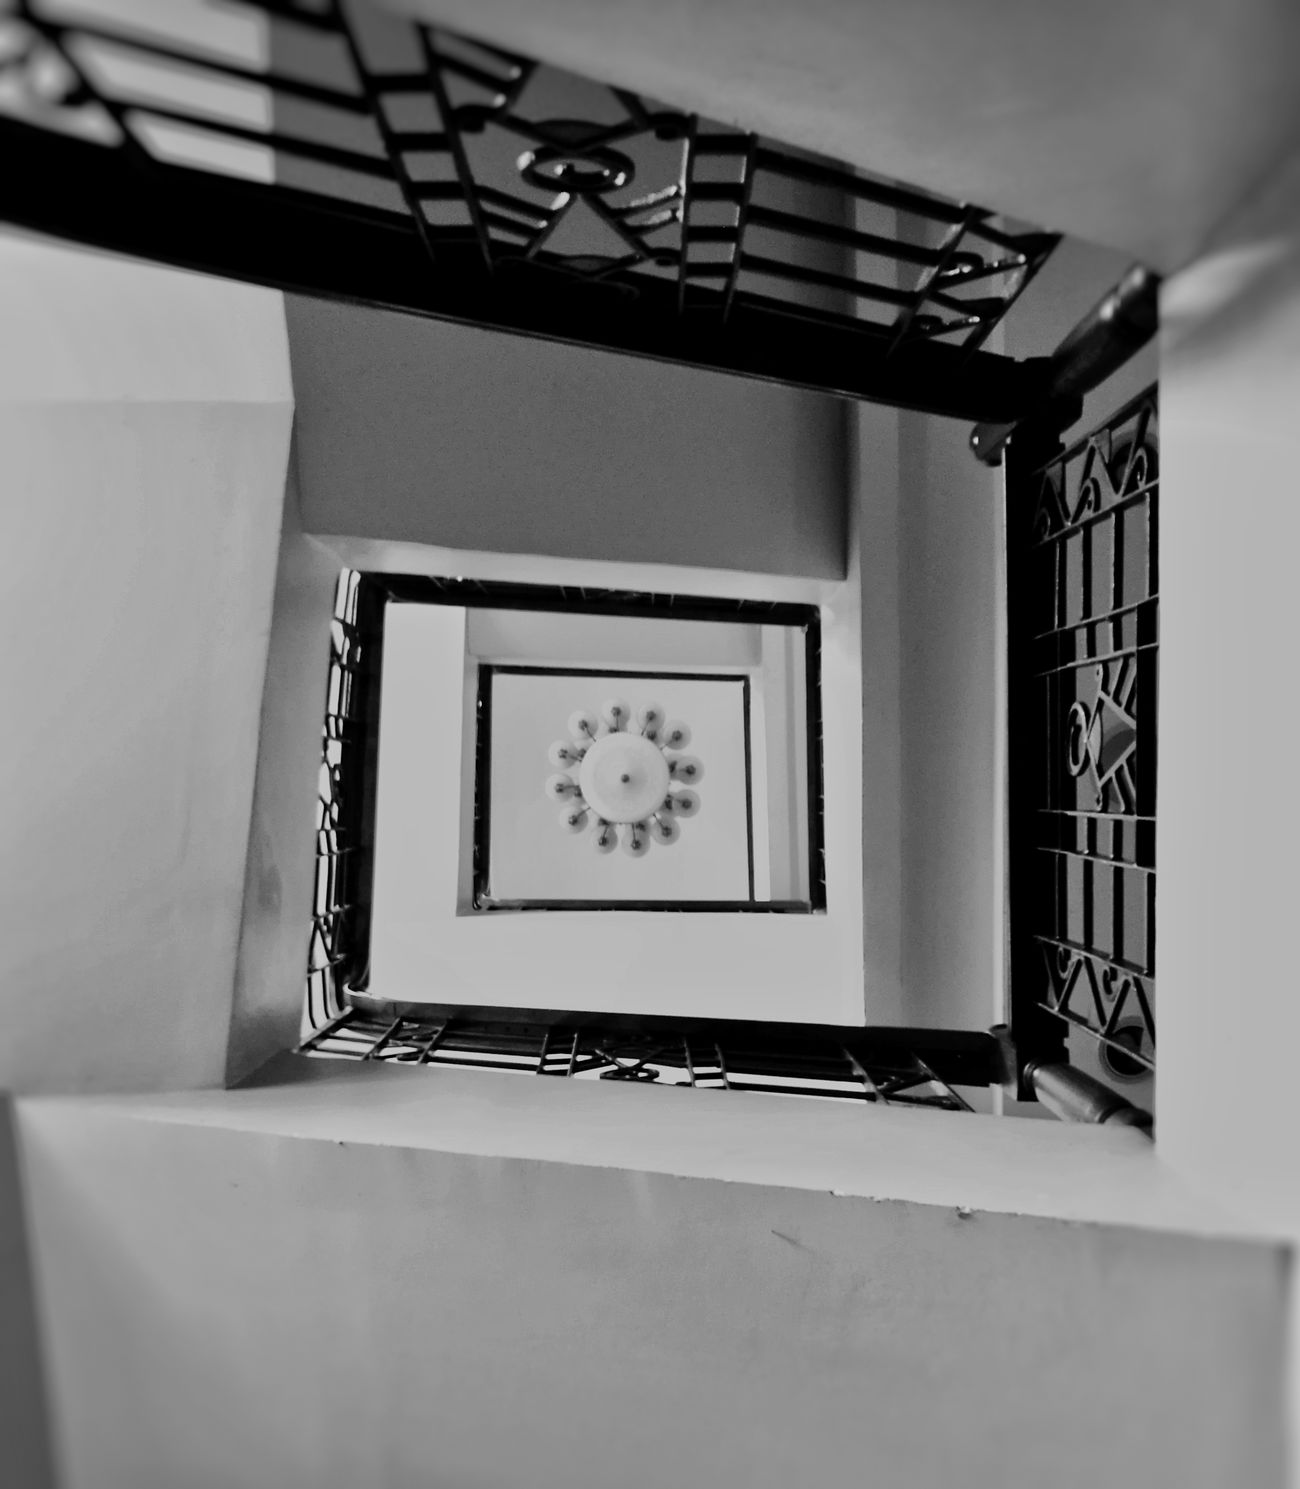 stairs. Picture Frame Architecture Indoors  EyeEm Best Shots - Black + White Blackandwhite Photography Black And White Streetphoto_bw Blackandwhite EyeEmNewHere EyeEmBestPics EyeEm Best Shots Eyeem Philippines Photooftheday Architecture Lines&Design Lines Lines And Shadows Lines And Design Low Angle View City Street First Eyeem Photo Adults Only Lineart Lines And Shapes Staircase Welcome To Black Long Goodbye The Architect - 2017 EyeEm Awards